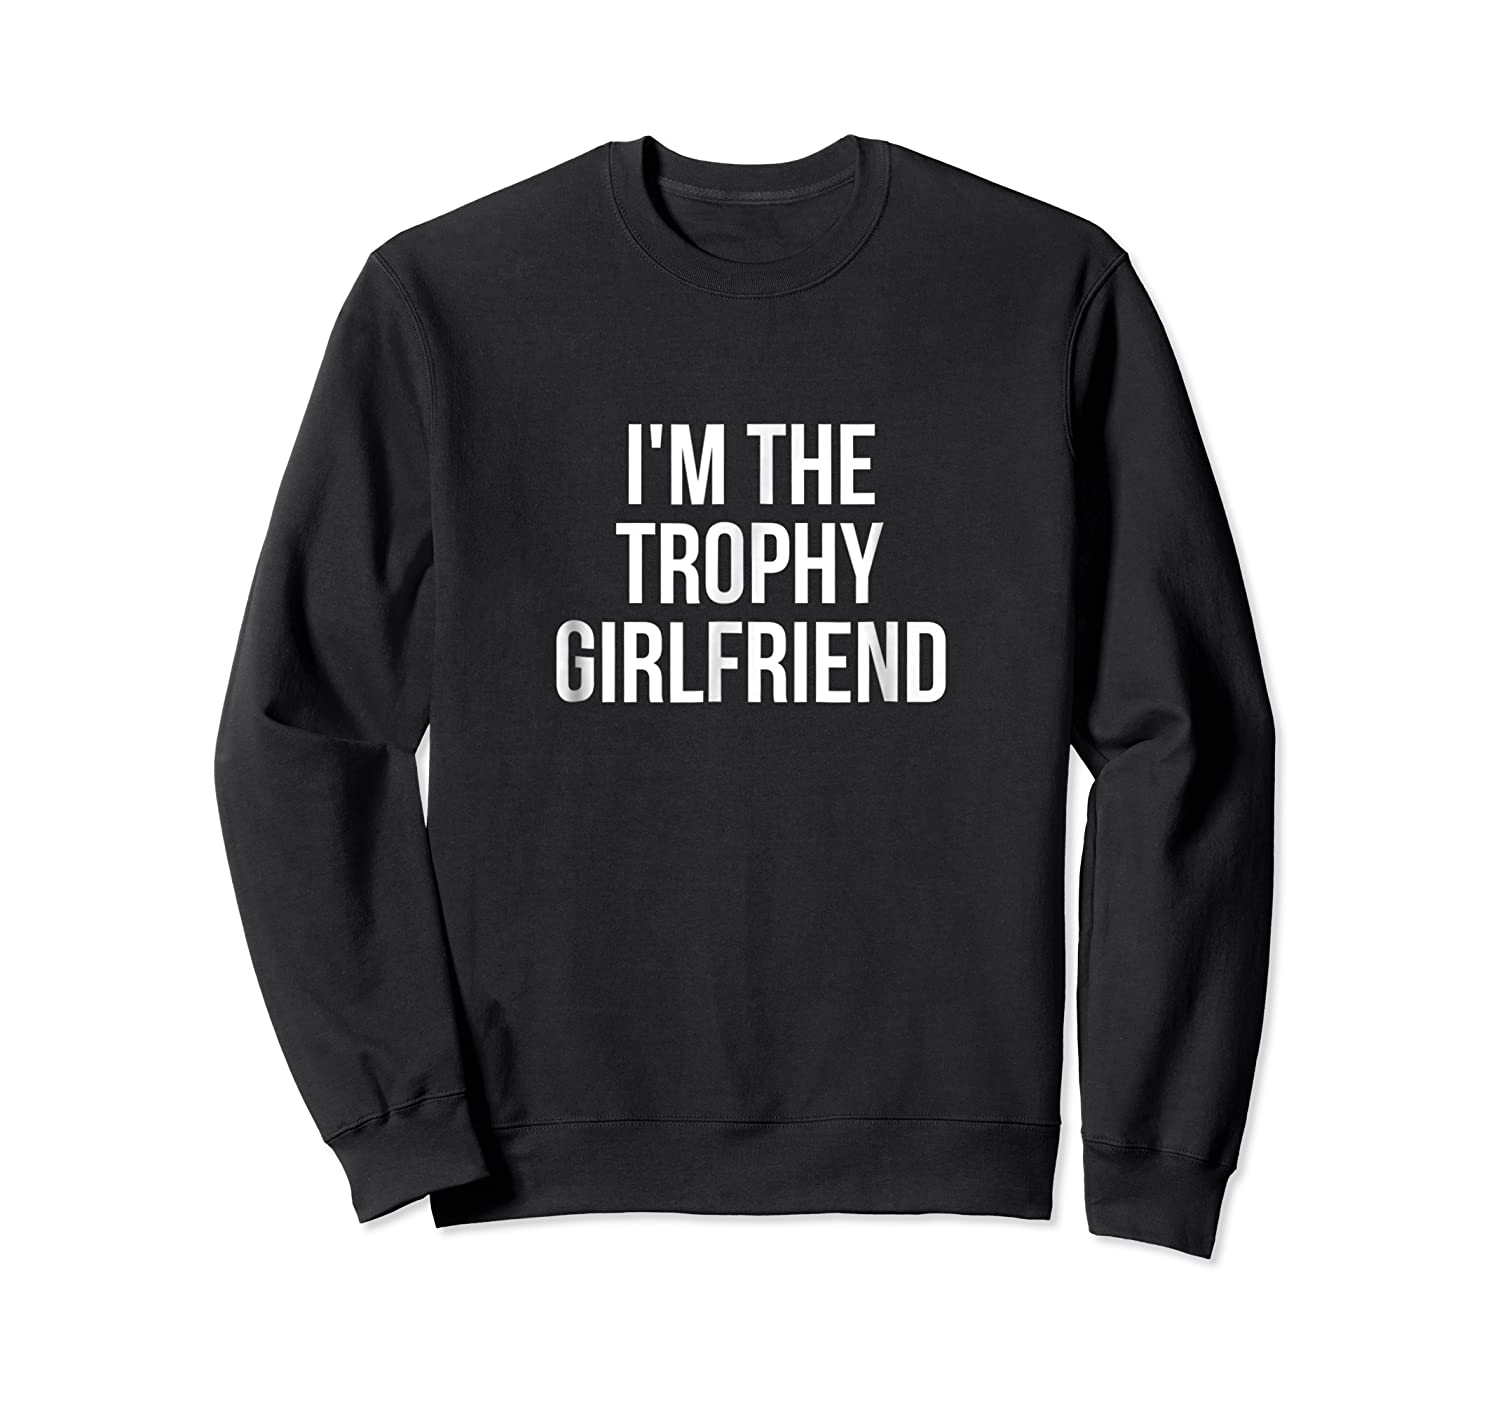 I'm The Trophy Girlfriend Couples Shirts Crewneck Sweater